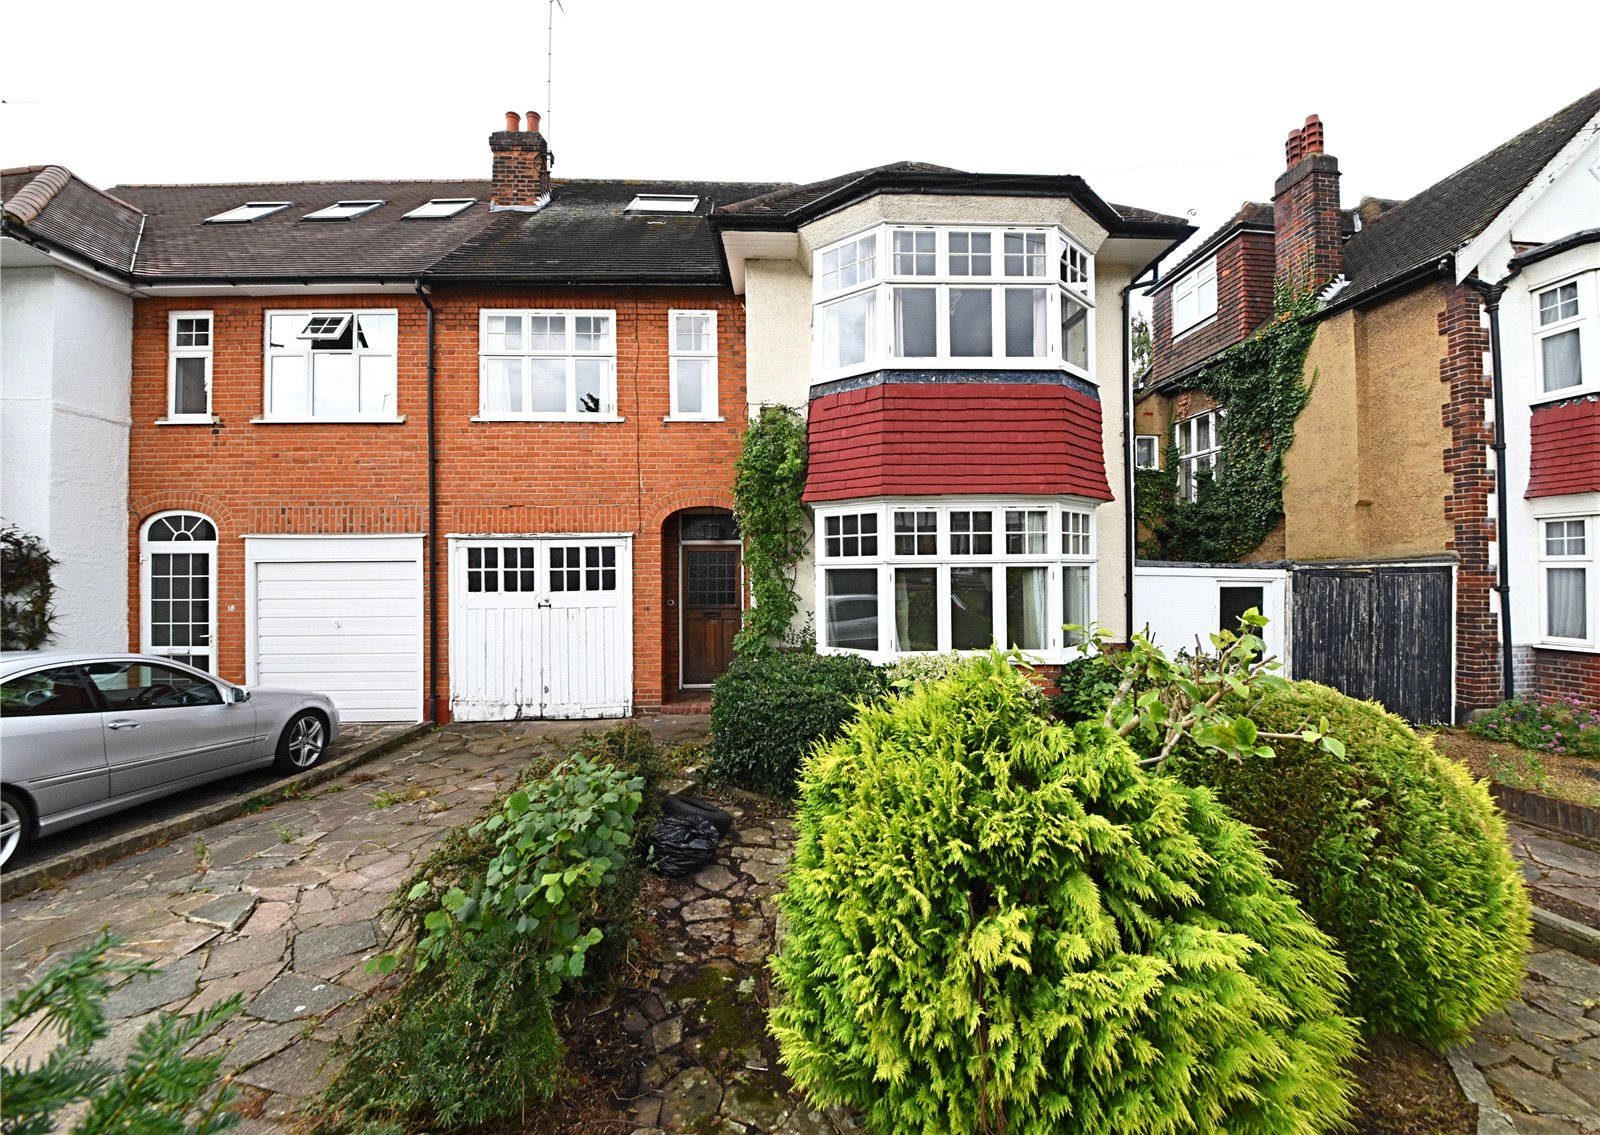 4 bed house for sale in Totteridge, N20 8QR - Property Image 1